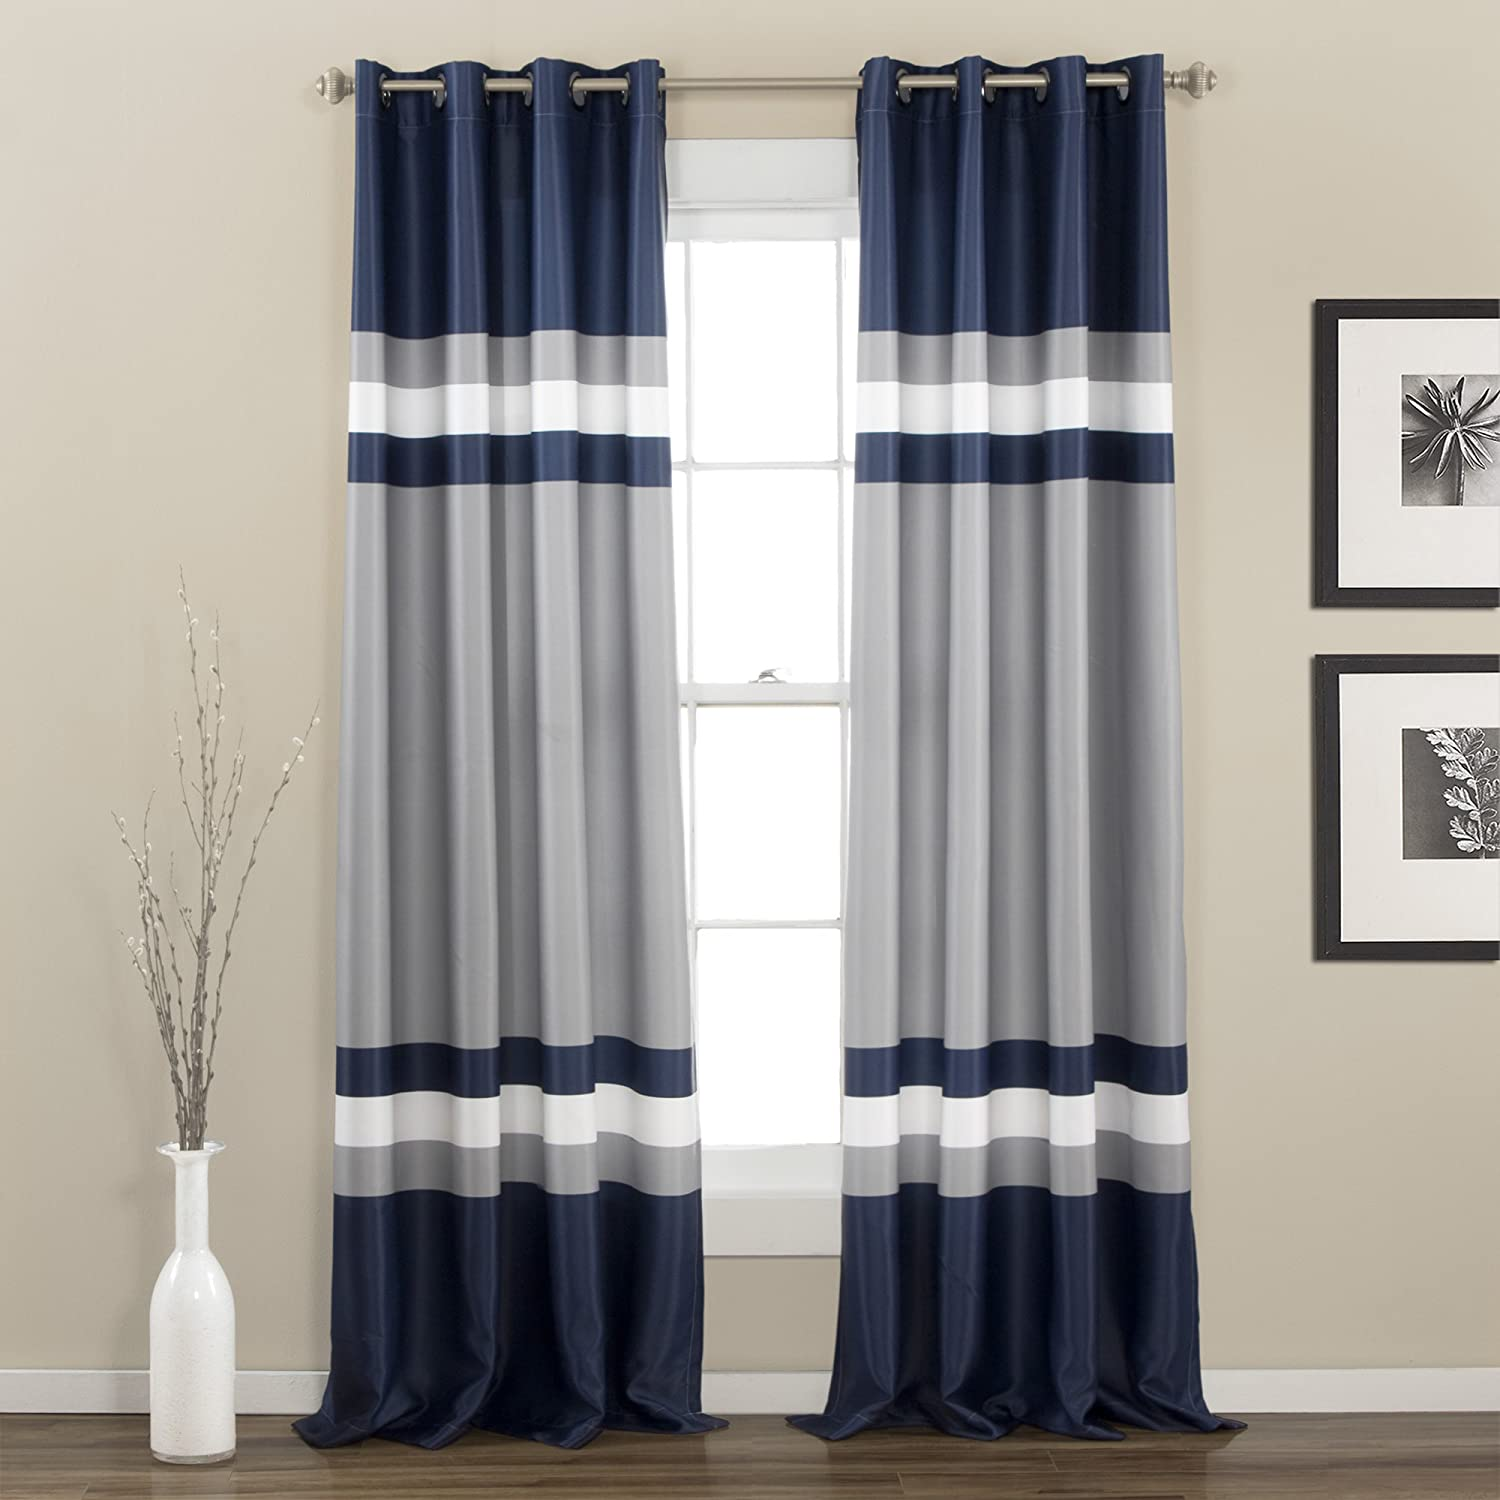 Lush Decor Alexander Curtain Panel, 84 x 52, Navy